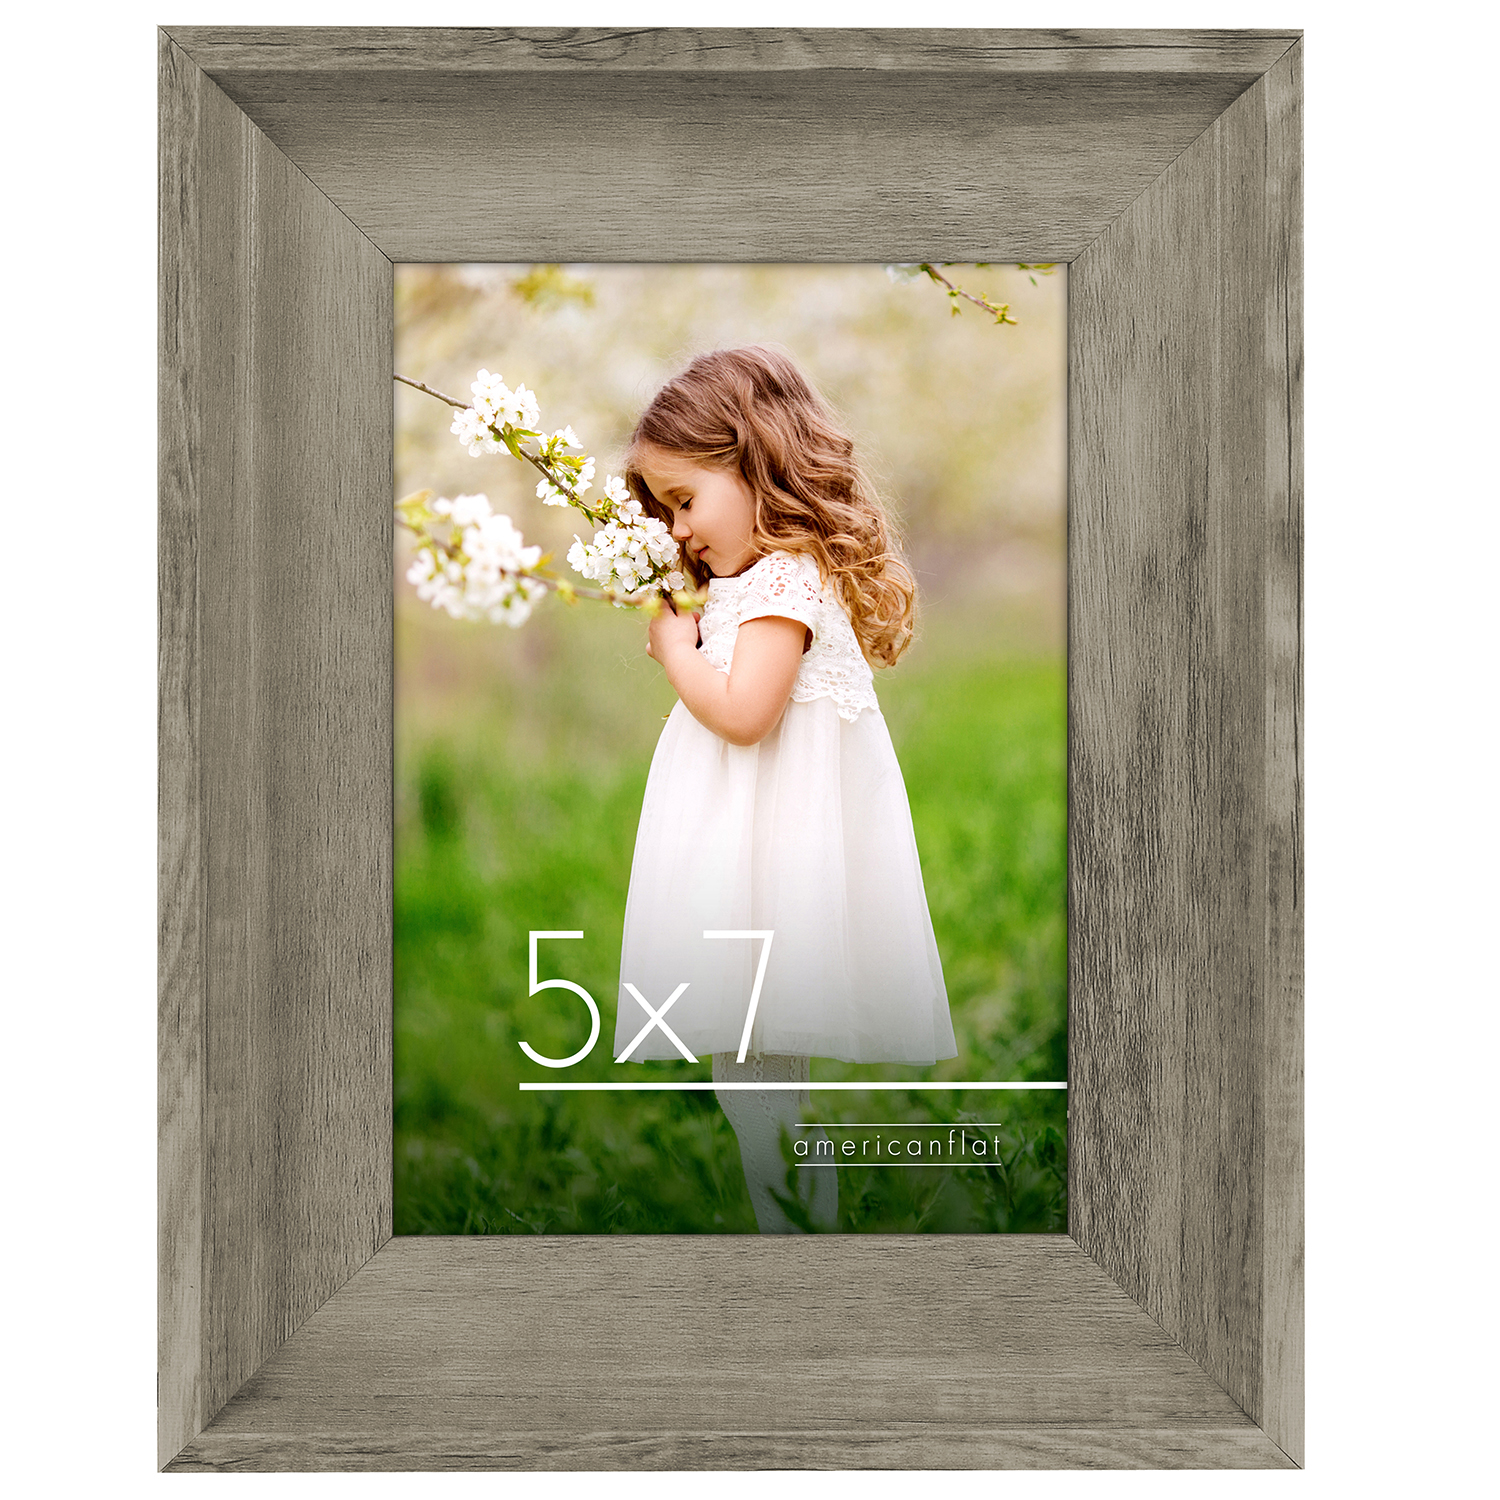 miniature 6 - Americanflat Wood Picture Frame 4x6 5x7 8x10 Wall Tabletop Easel Pick Size Color